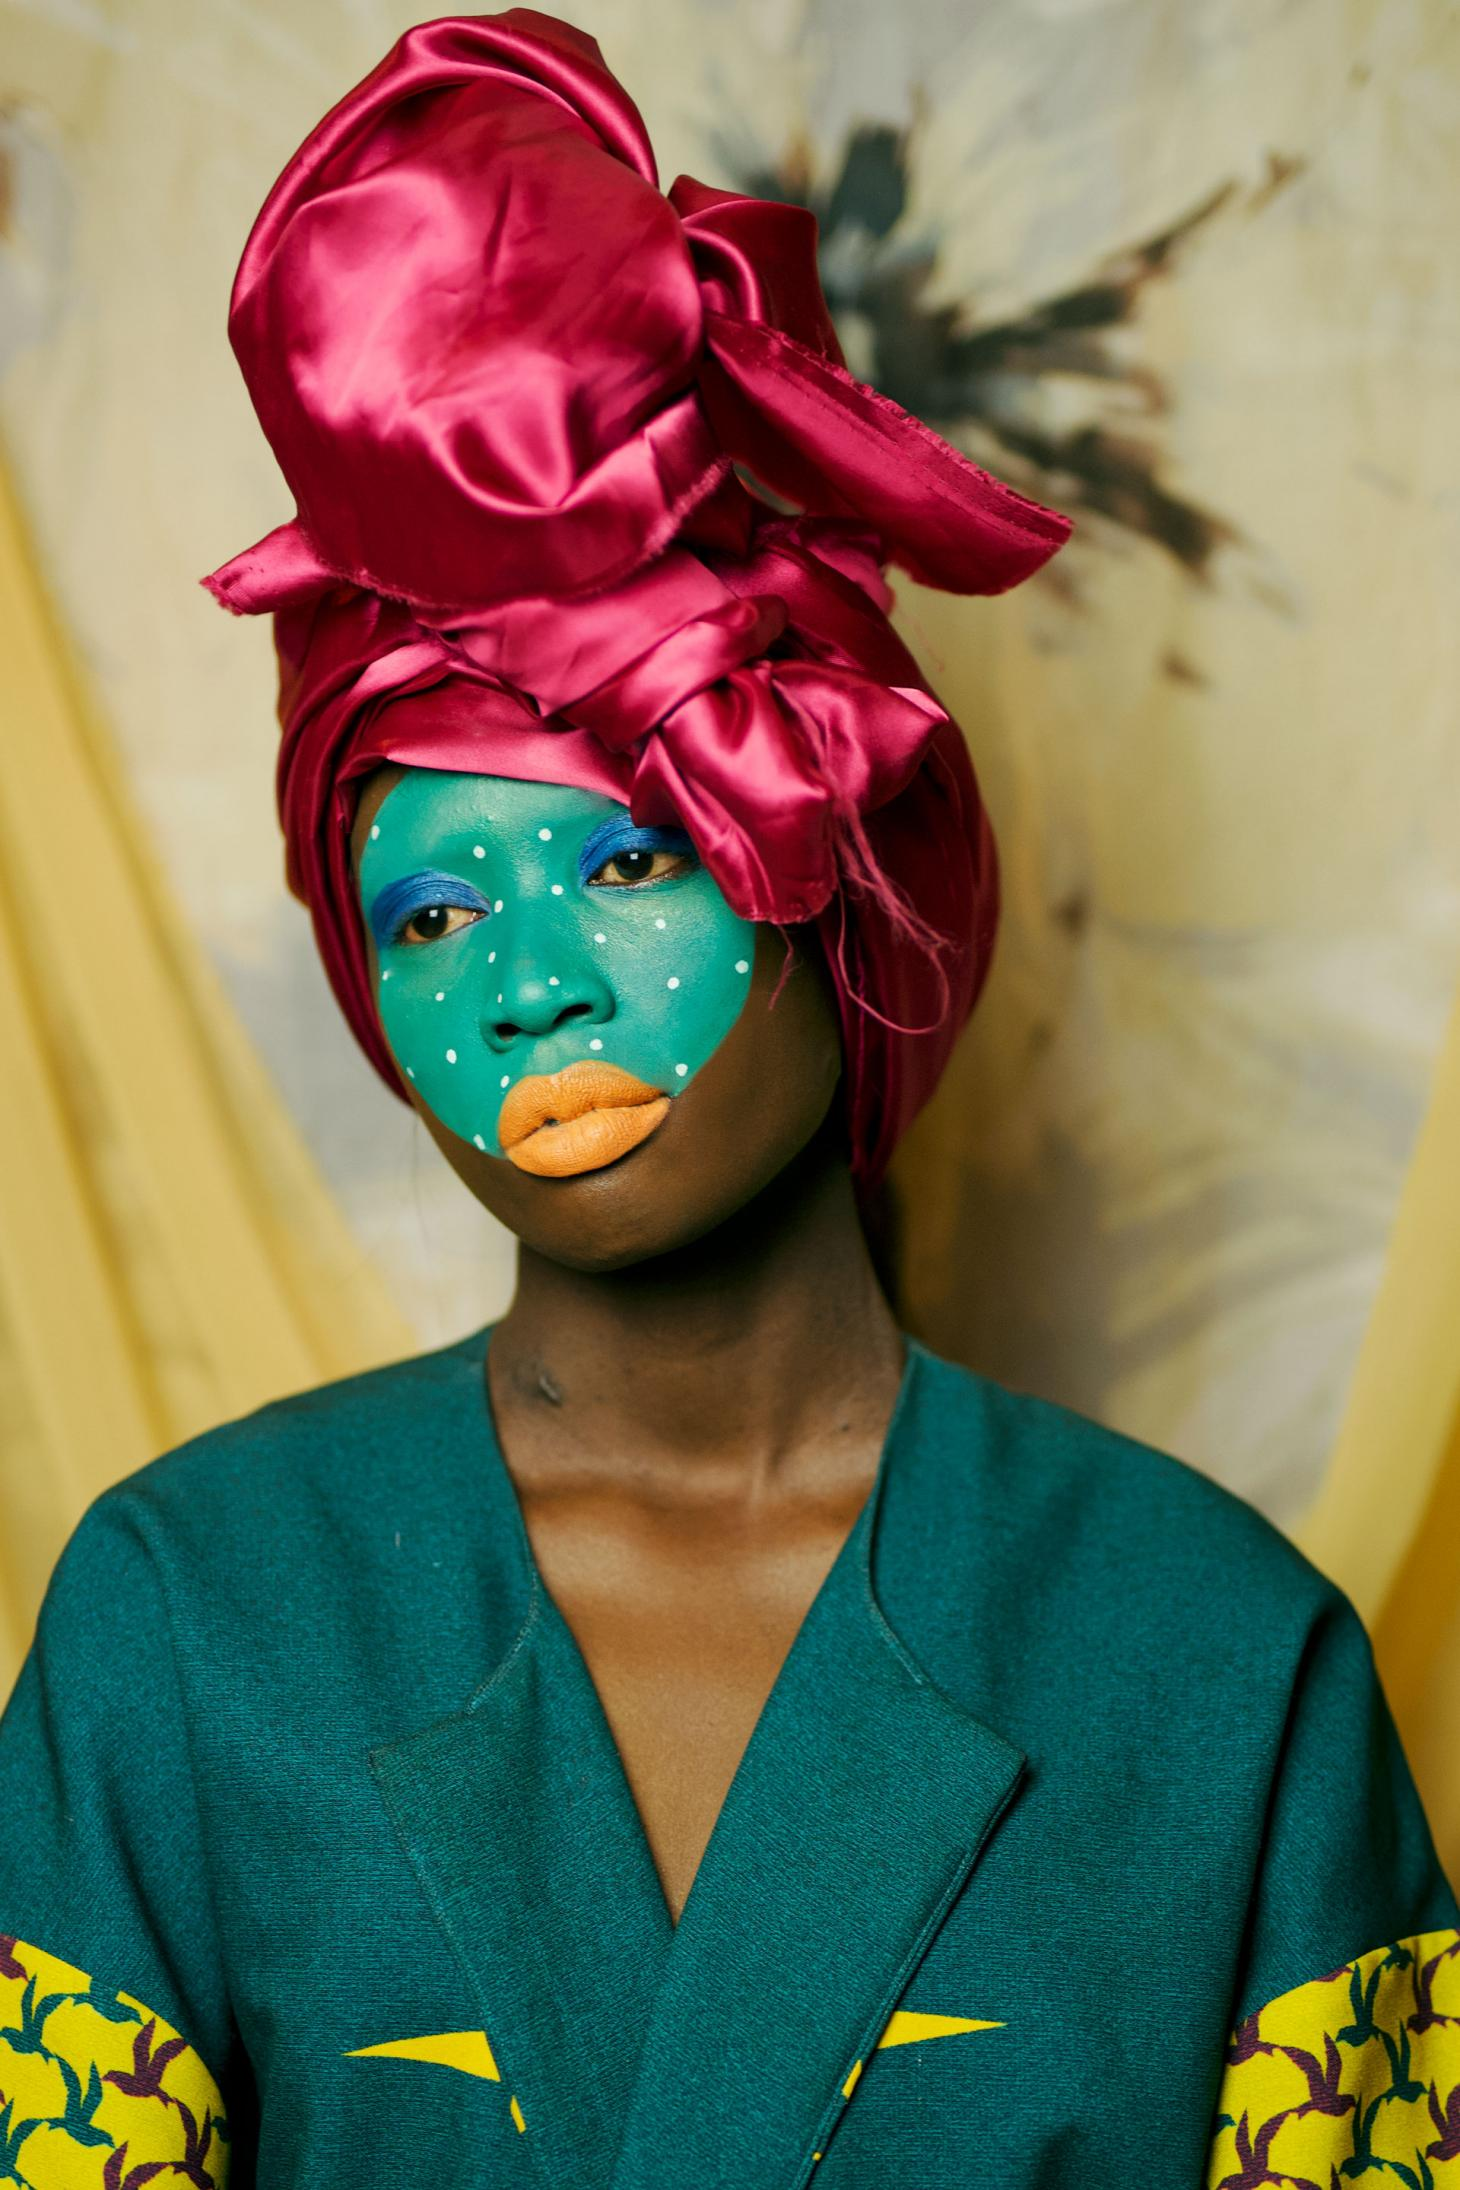 Atong Atem's Sahara portrait image on display at Photo 2021 in Melbourne